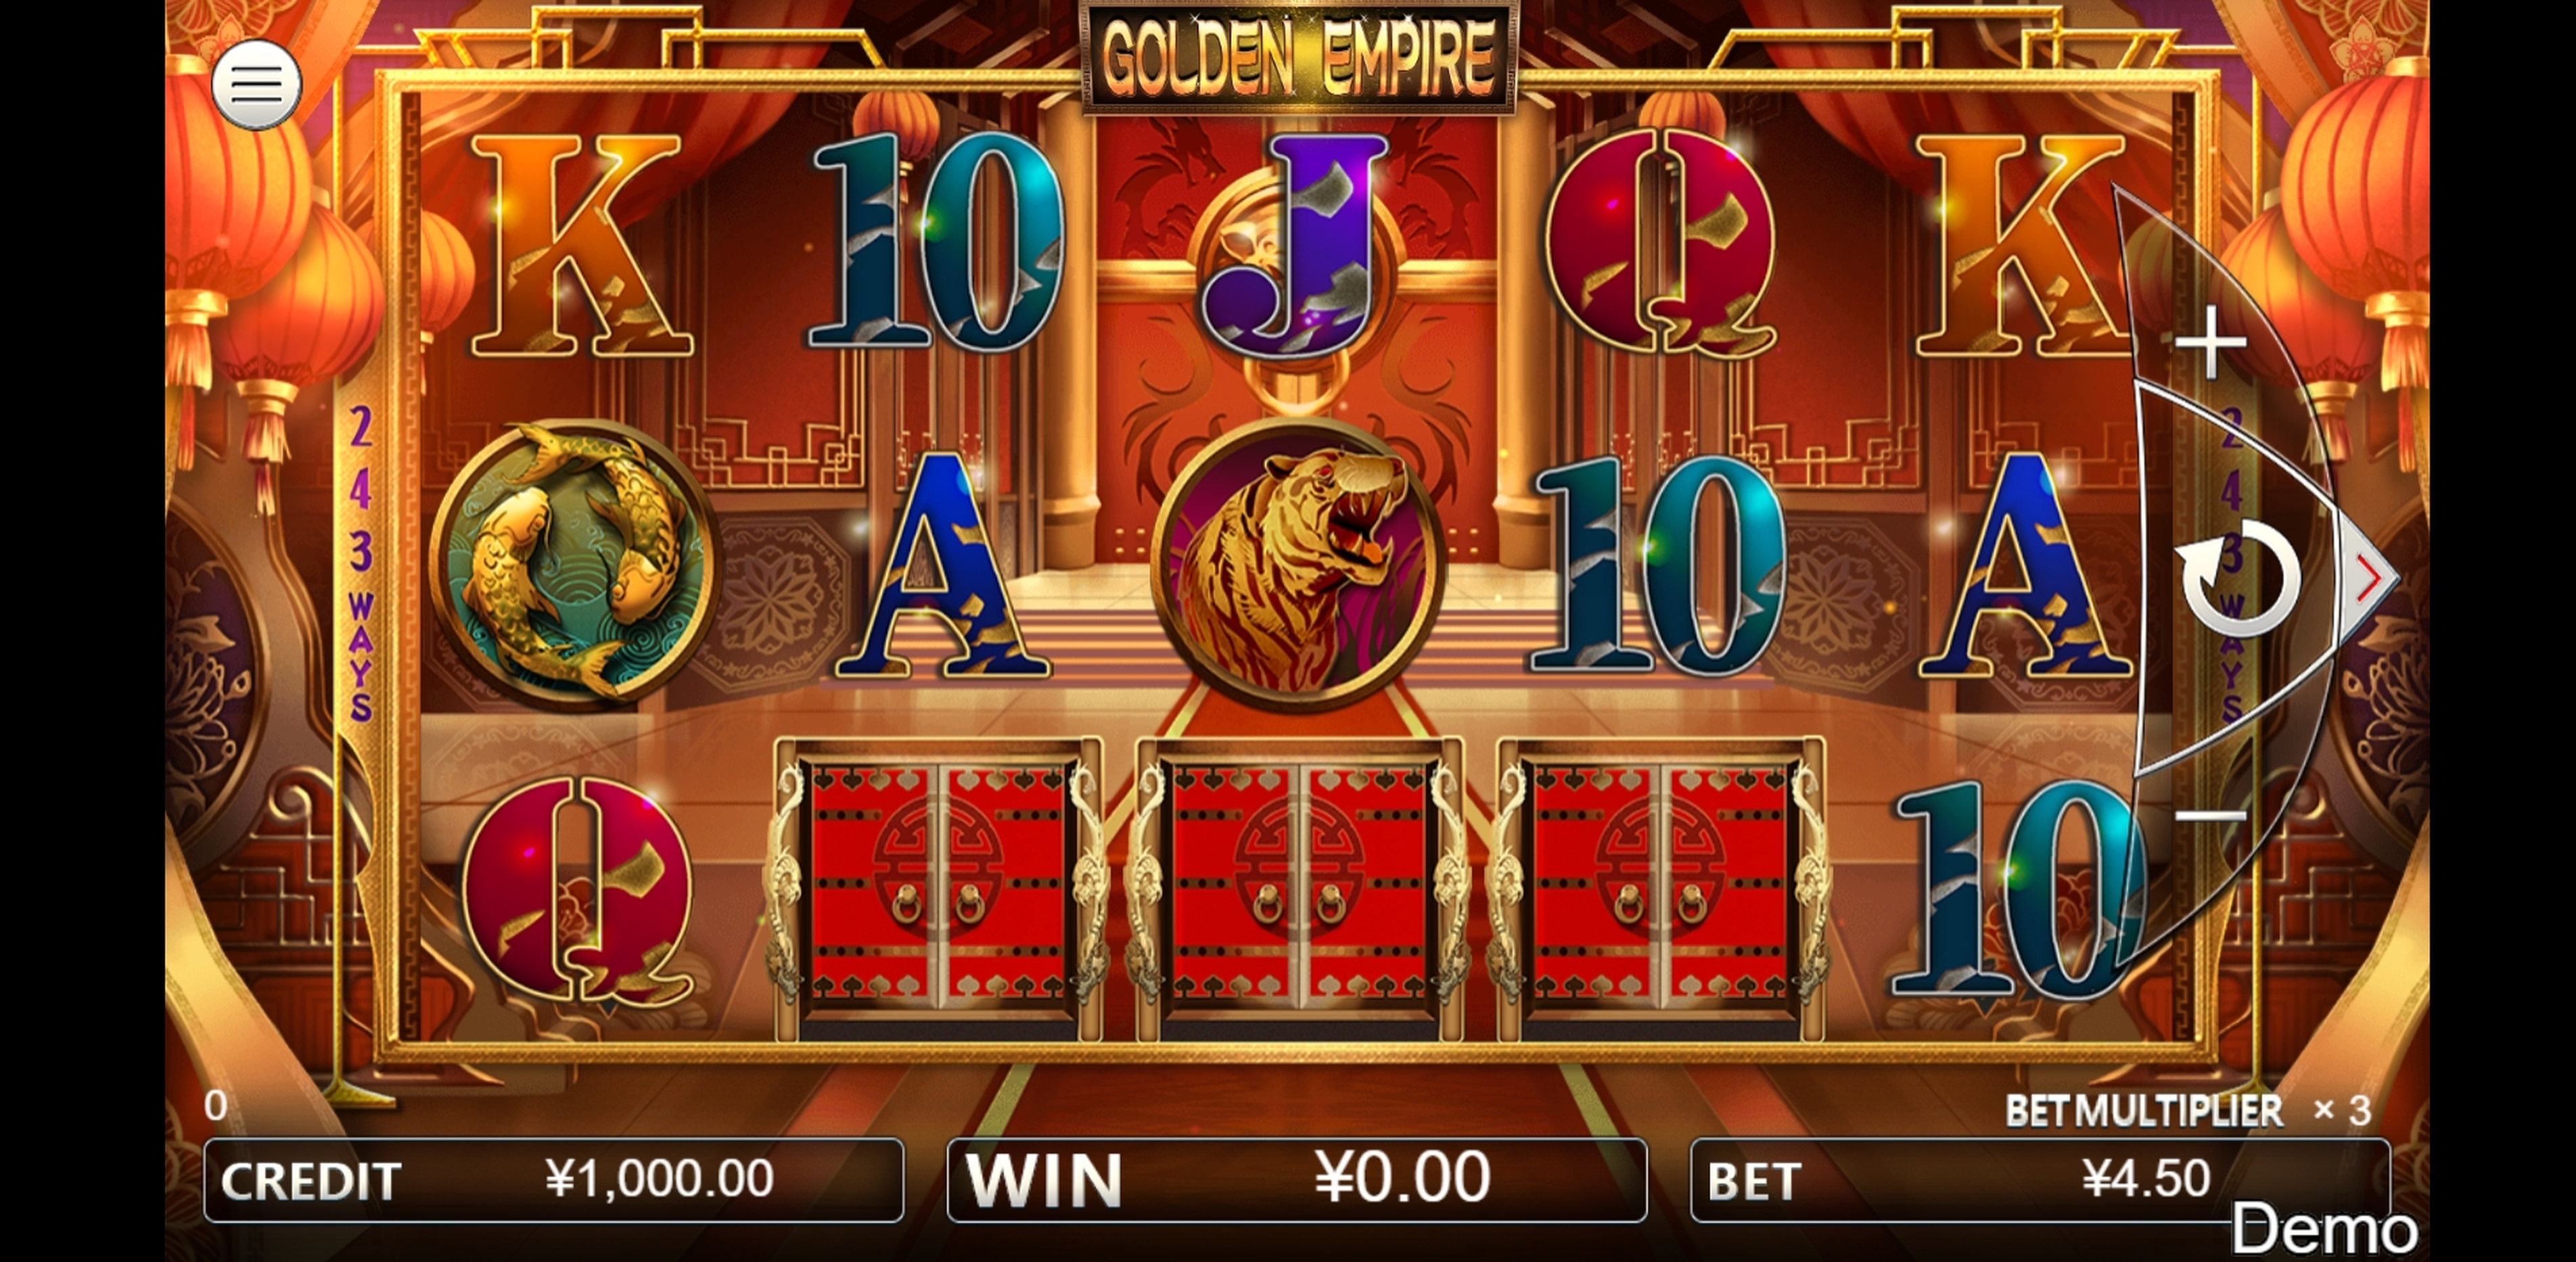 Reels in Golden Empire Slot Game by Iconic Gaming